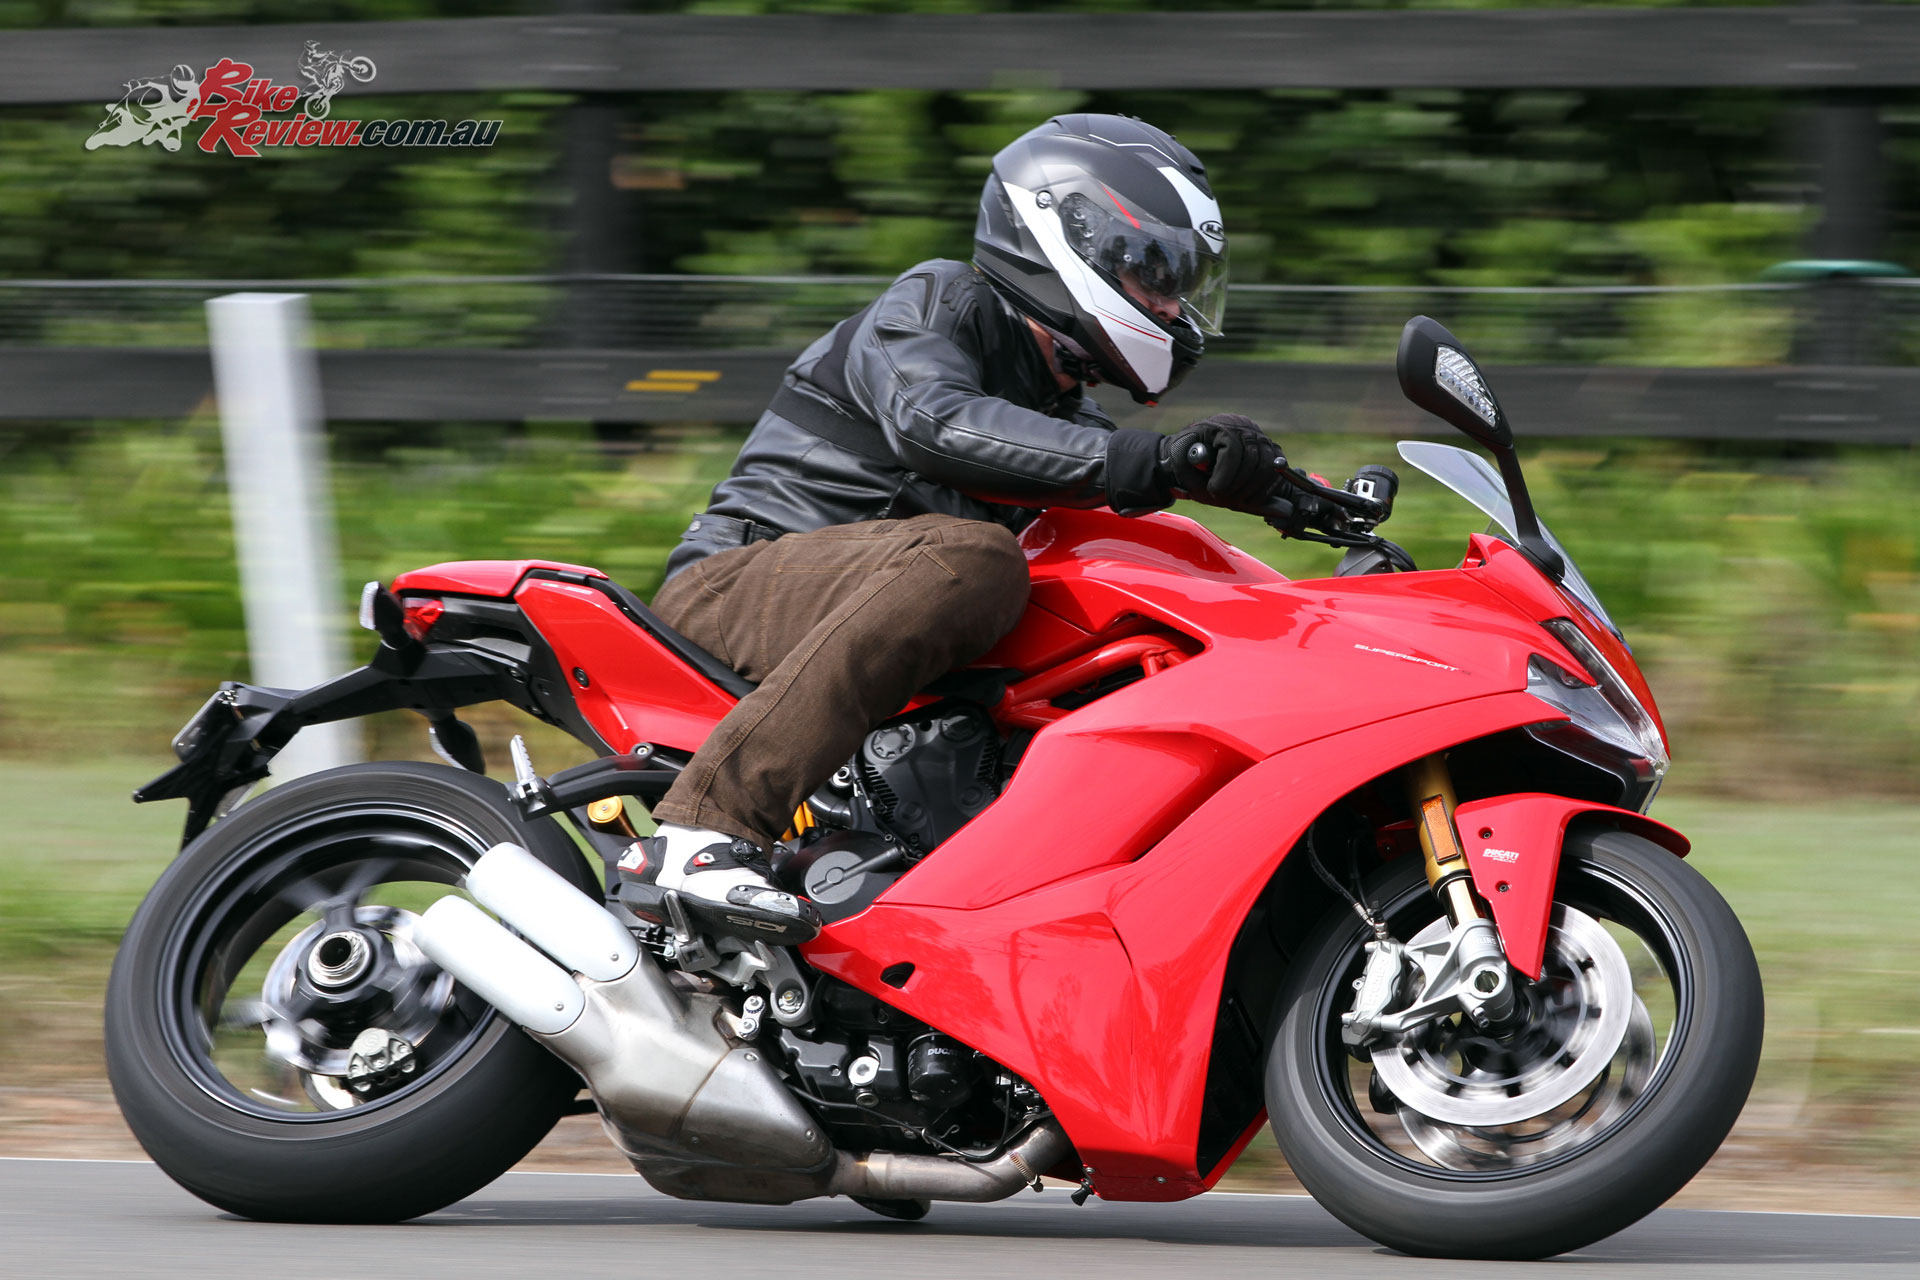 Review: 2018 Ducati Supersport S - Bike Review